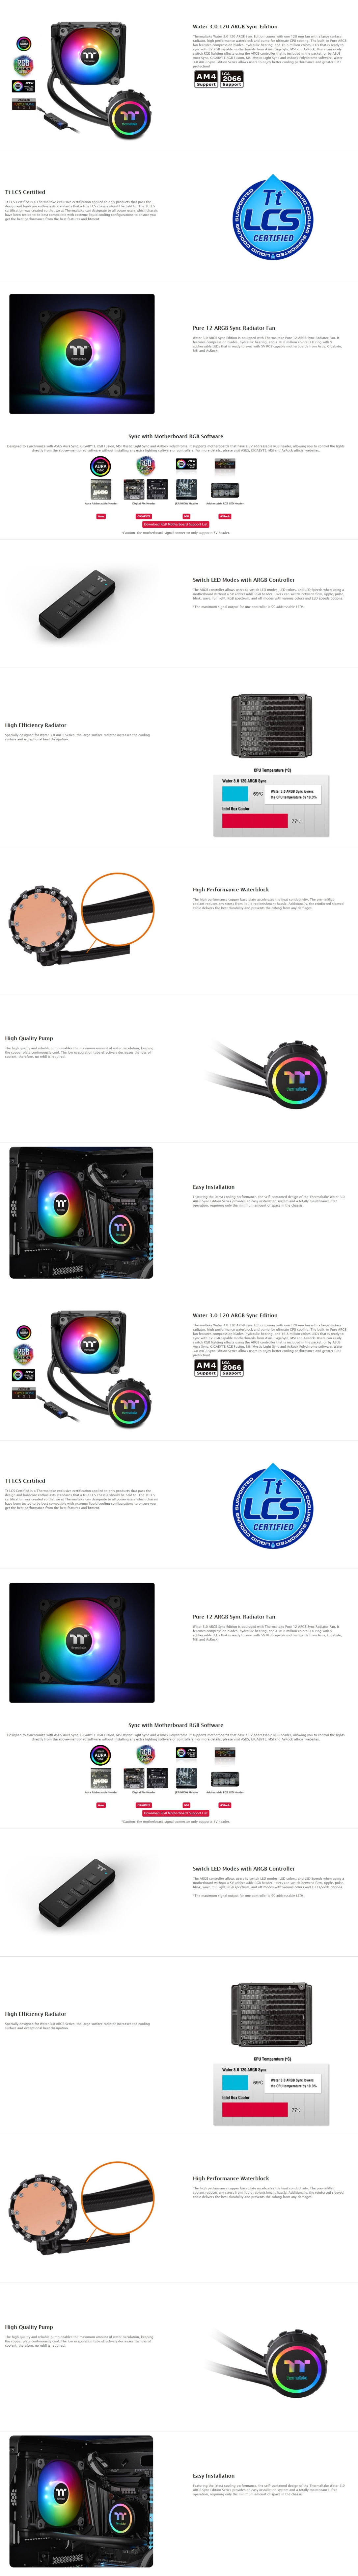 A large marketing image providing additional information about the product Thermaltake Water 3.0 120 Addressable RGB CPU Liquid Cooler - Additional alt info not provided